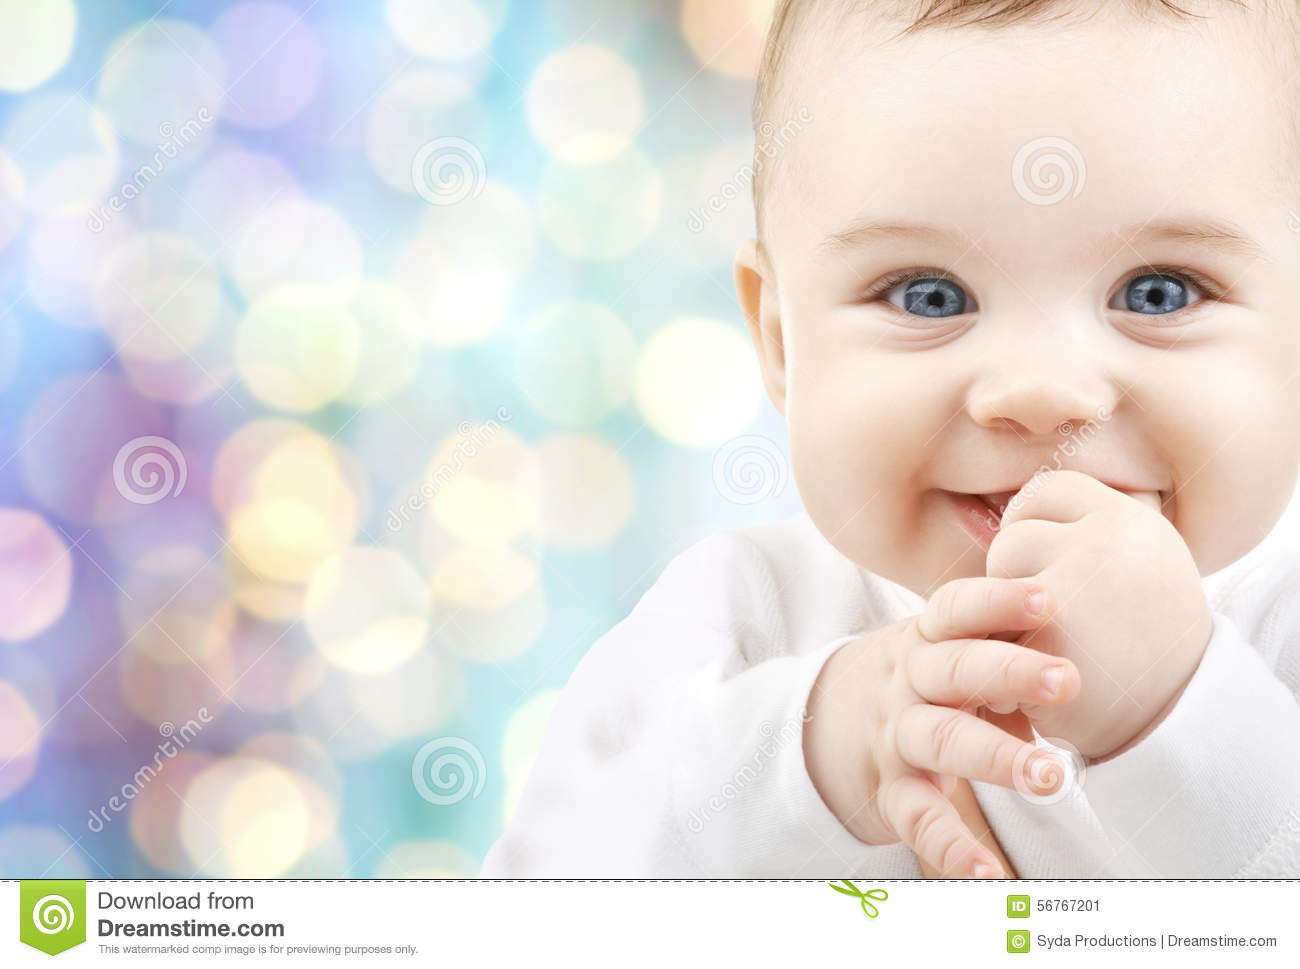 happy-baby-over-blue-holidays-lights-background-children-people-infancy-age-concept-beautiful-boy-56767201.jpg